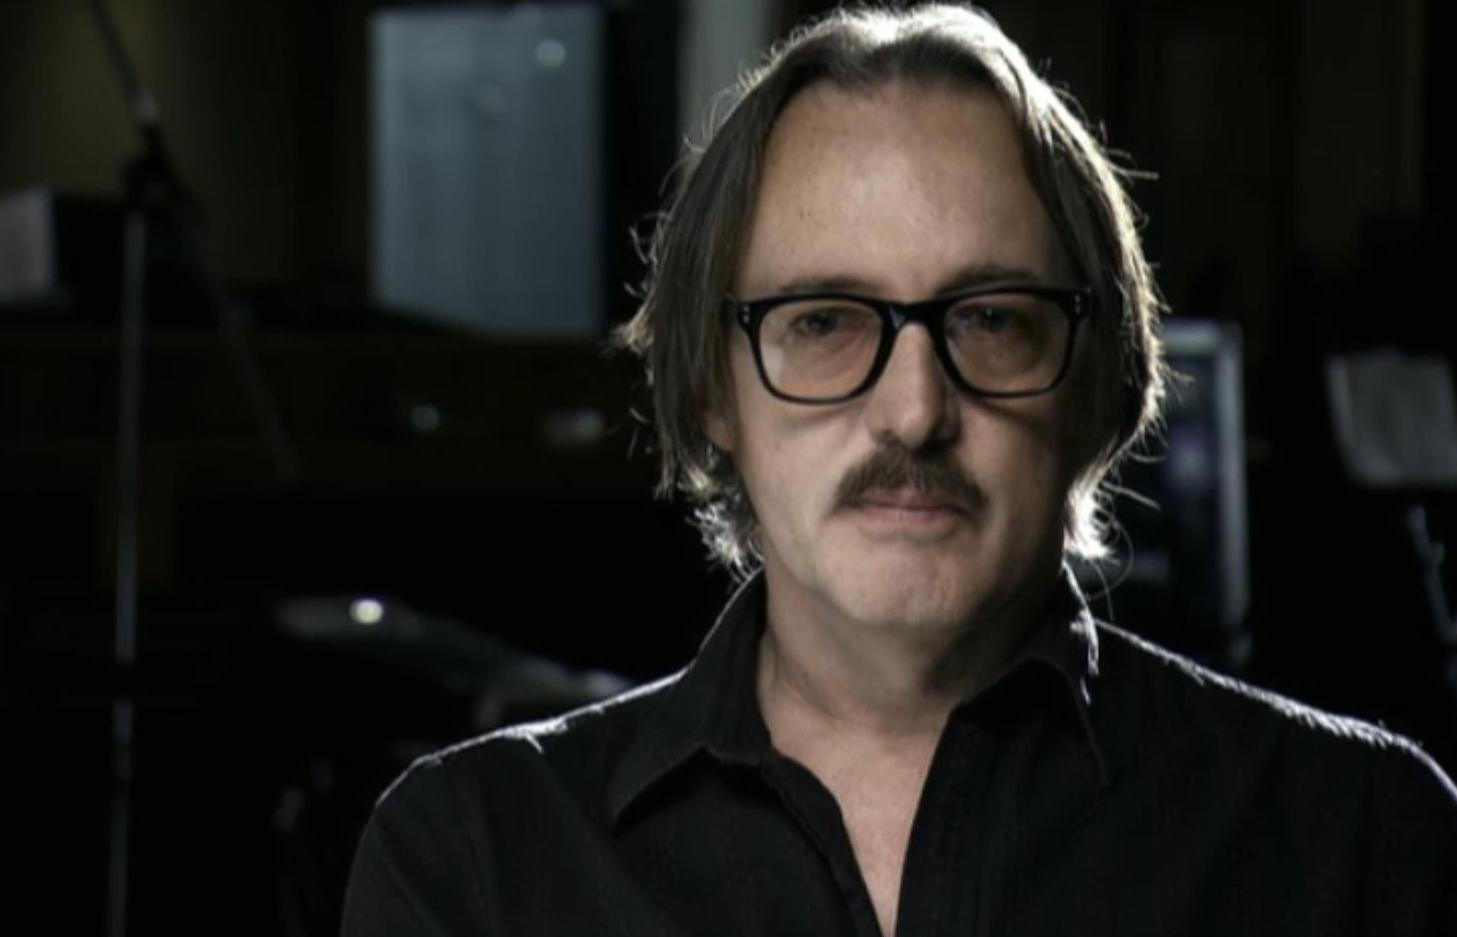 Butch Vig Born On August 2 1955 Was The Primary And Most Recognized Producer Of Alternative Rock Hit Early 90s He Has Released Many Albums For